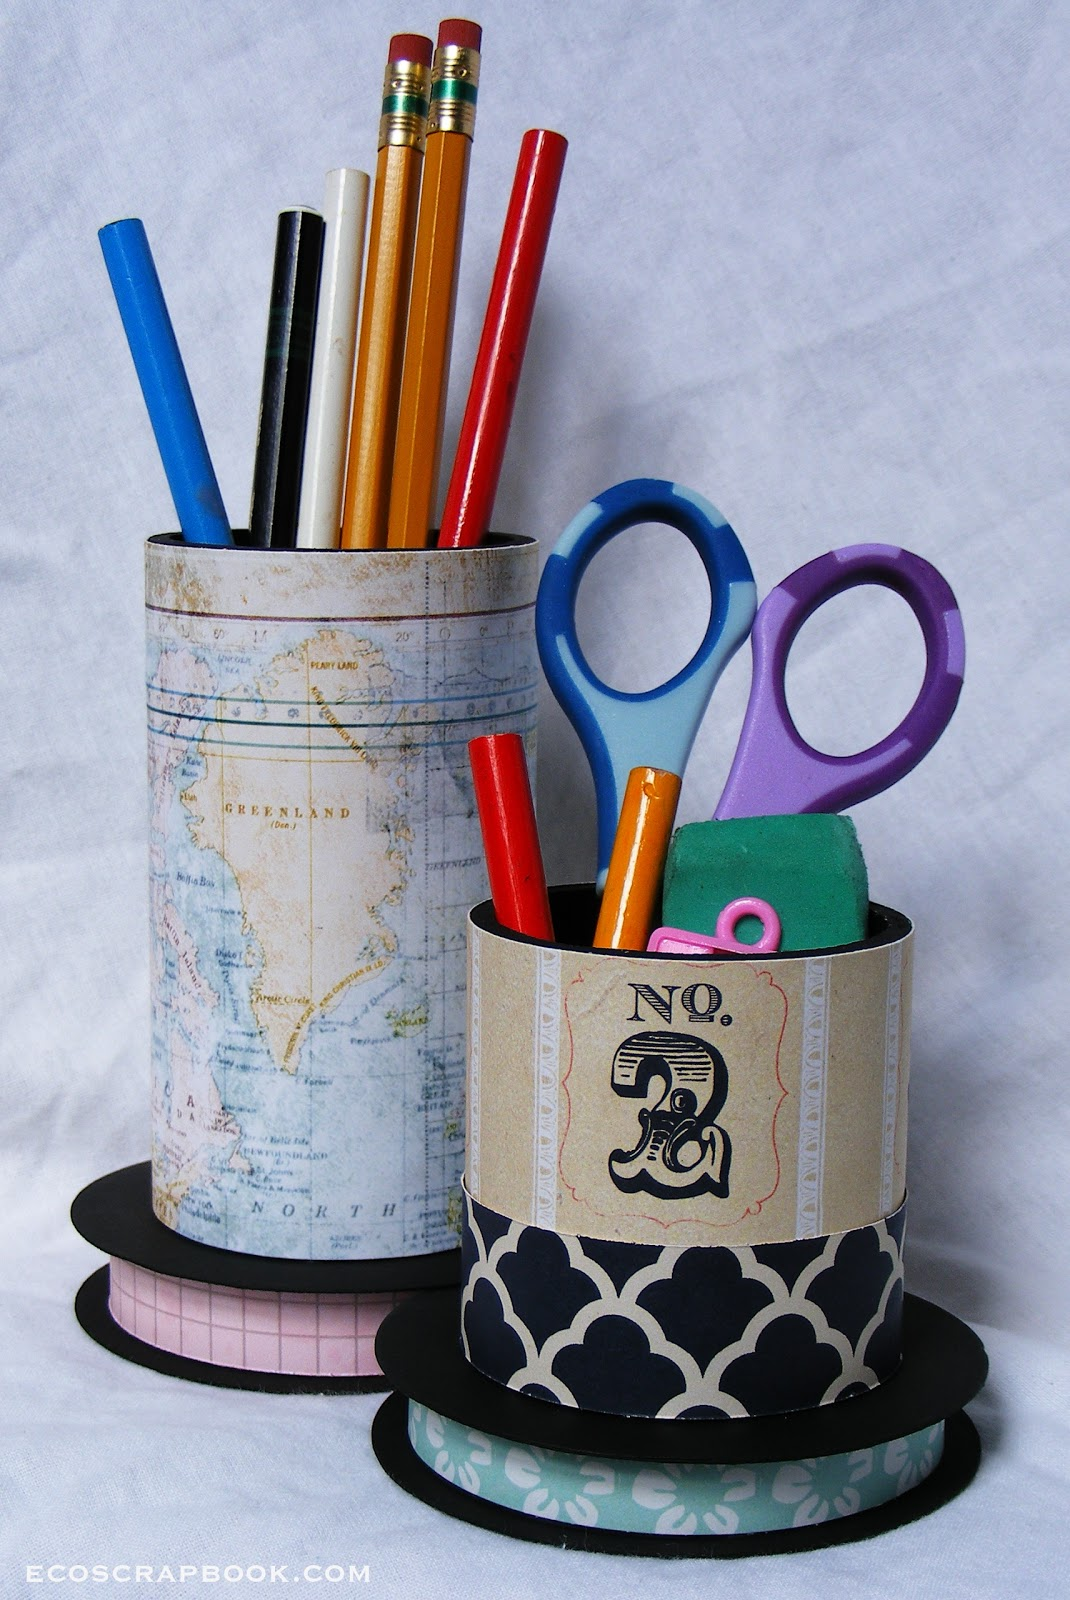 EcoScrapbook: Back-to-school project tutorial: Upcycled ...